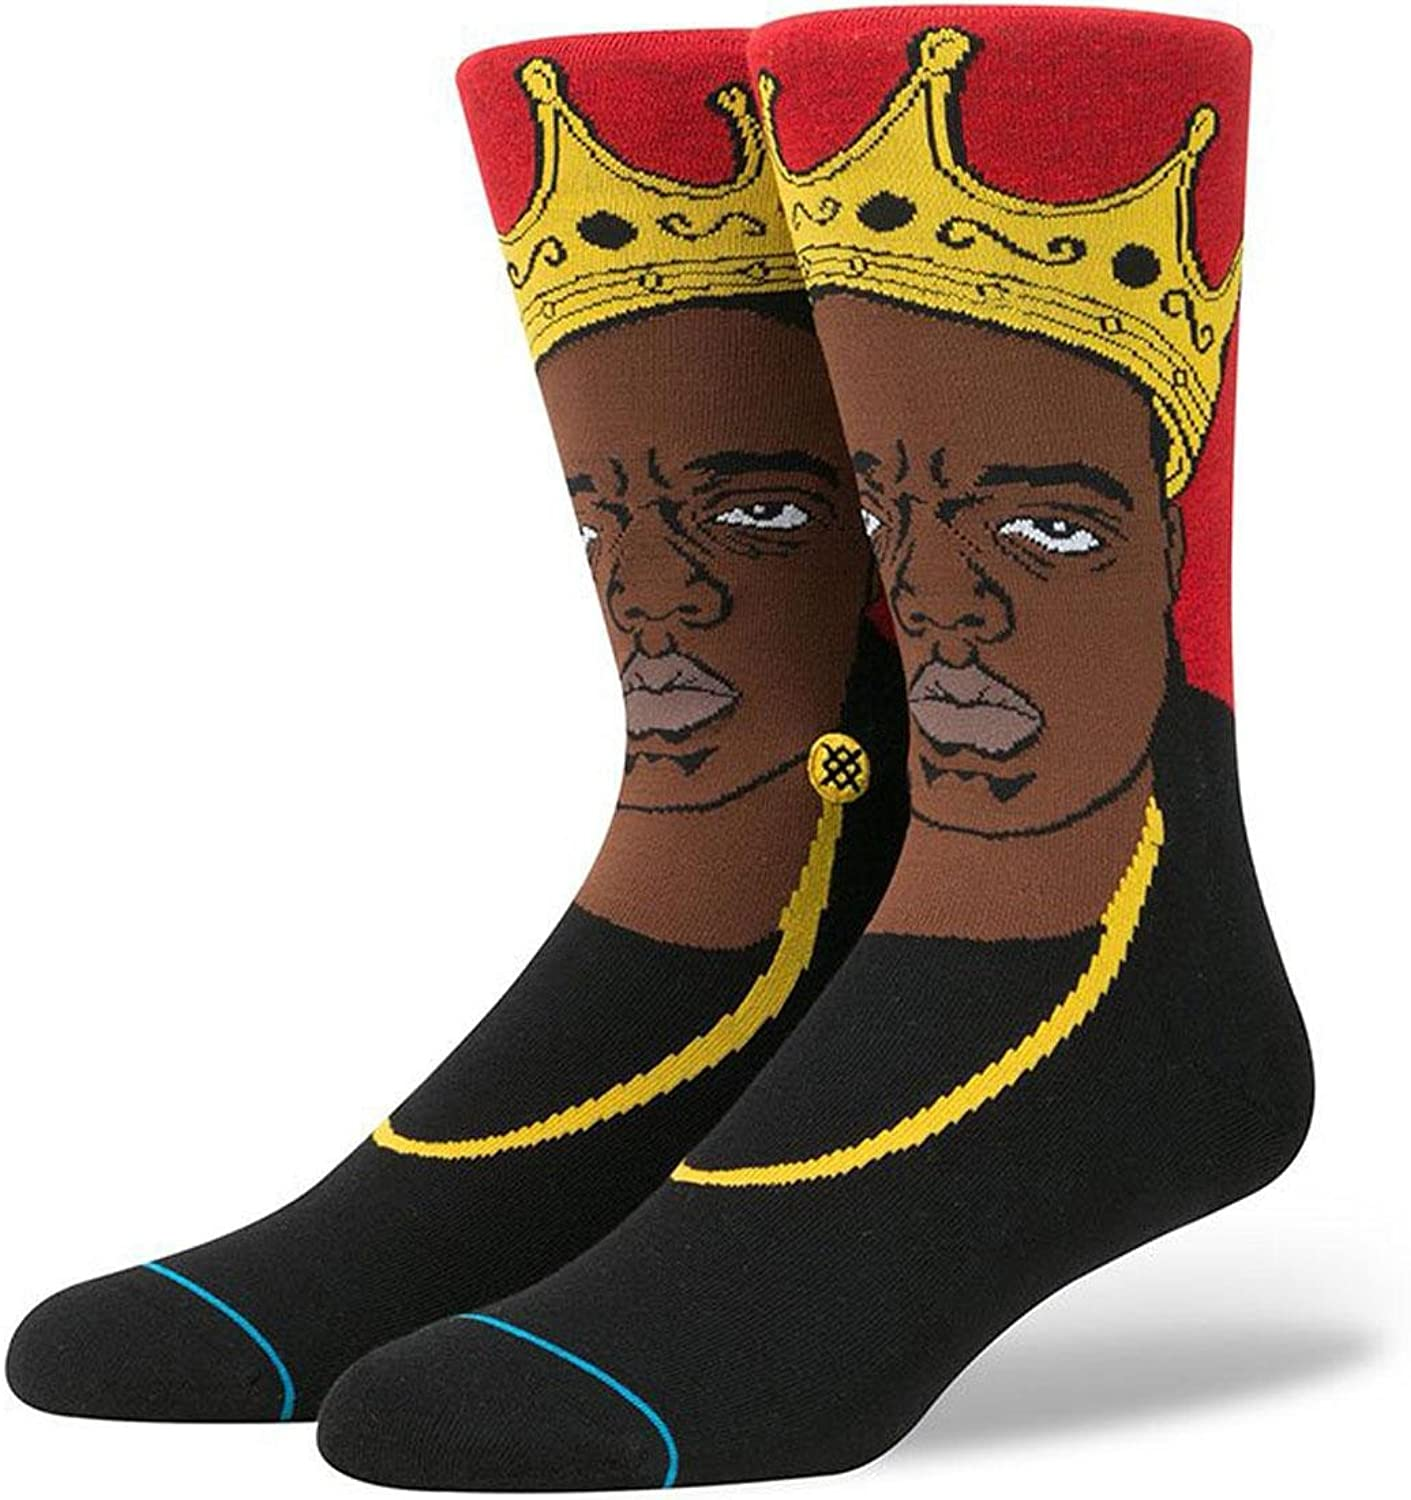 Stance Men's Notorious Big Anthem Crew Socks Red